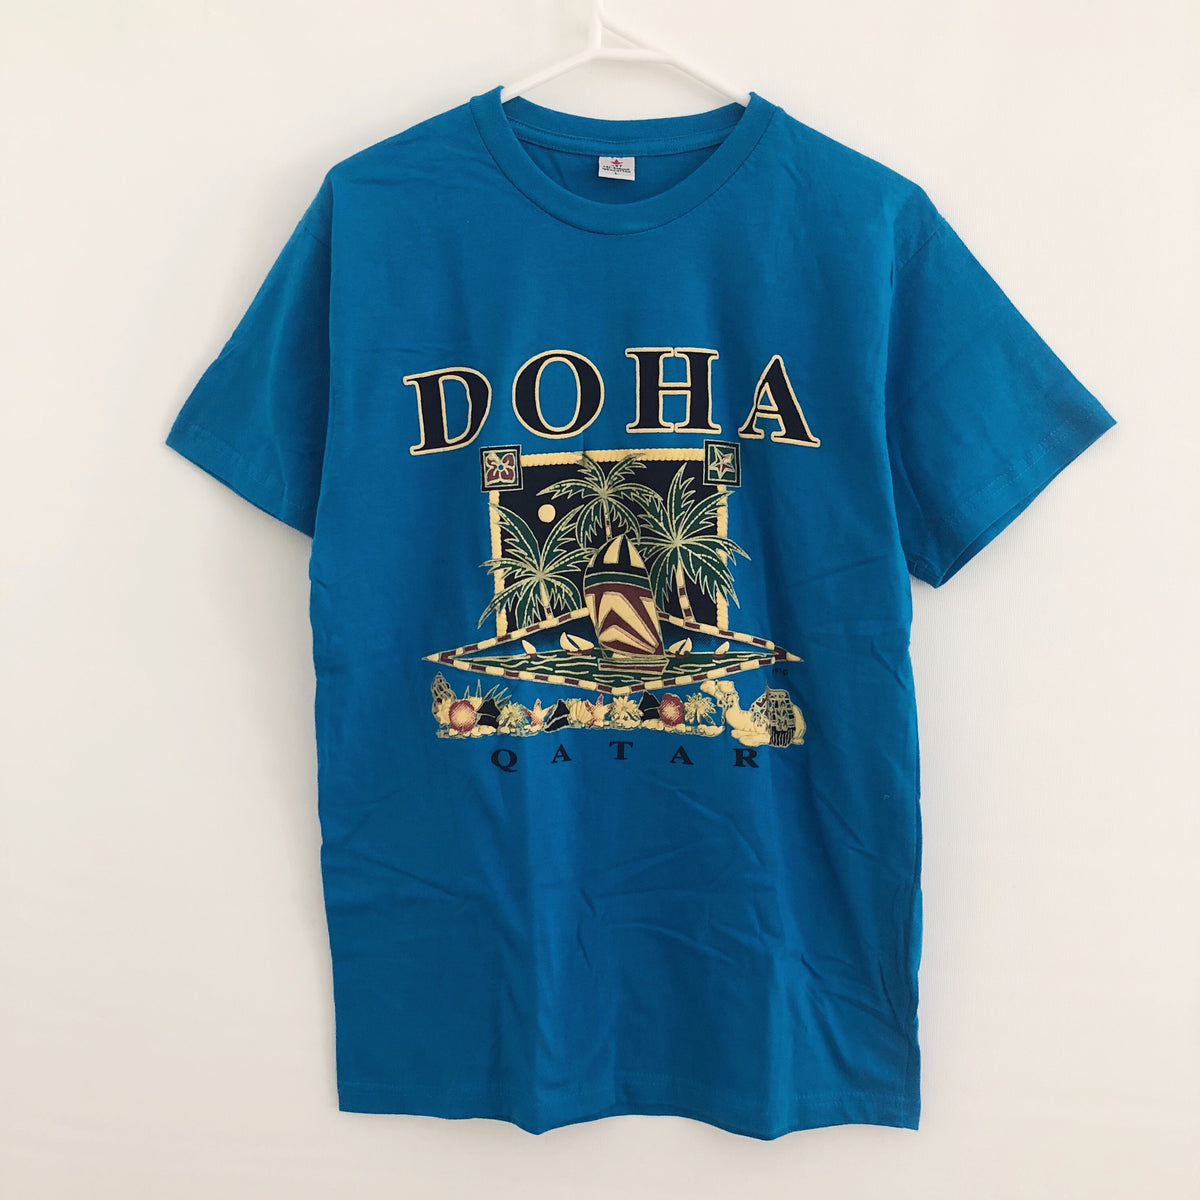 Doha Qatar Boat Puff Print 90's Vintage T-Shirt Mens Large (Fits Medium)